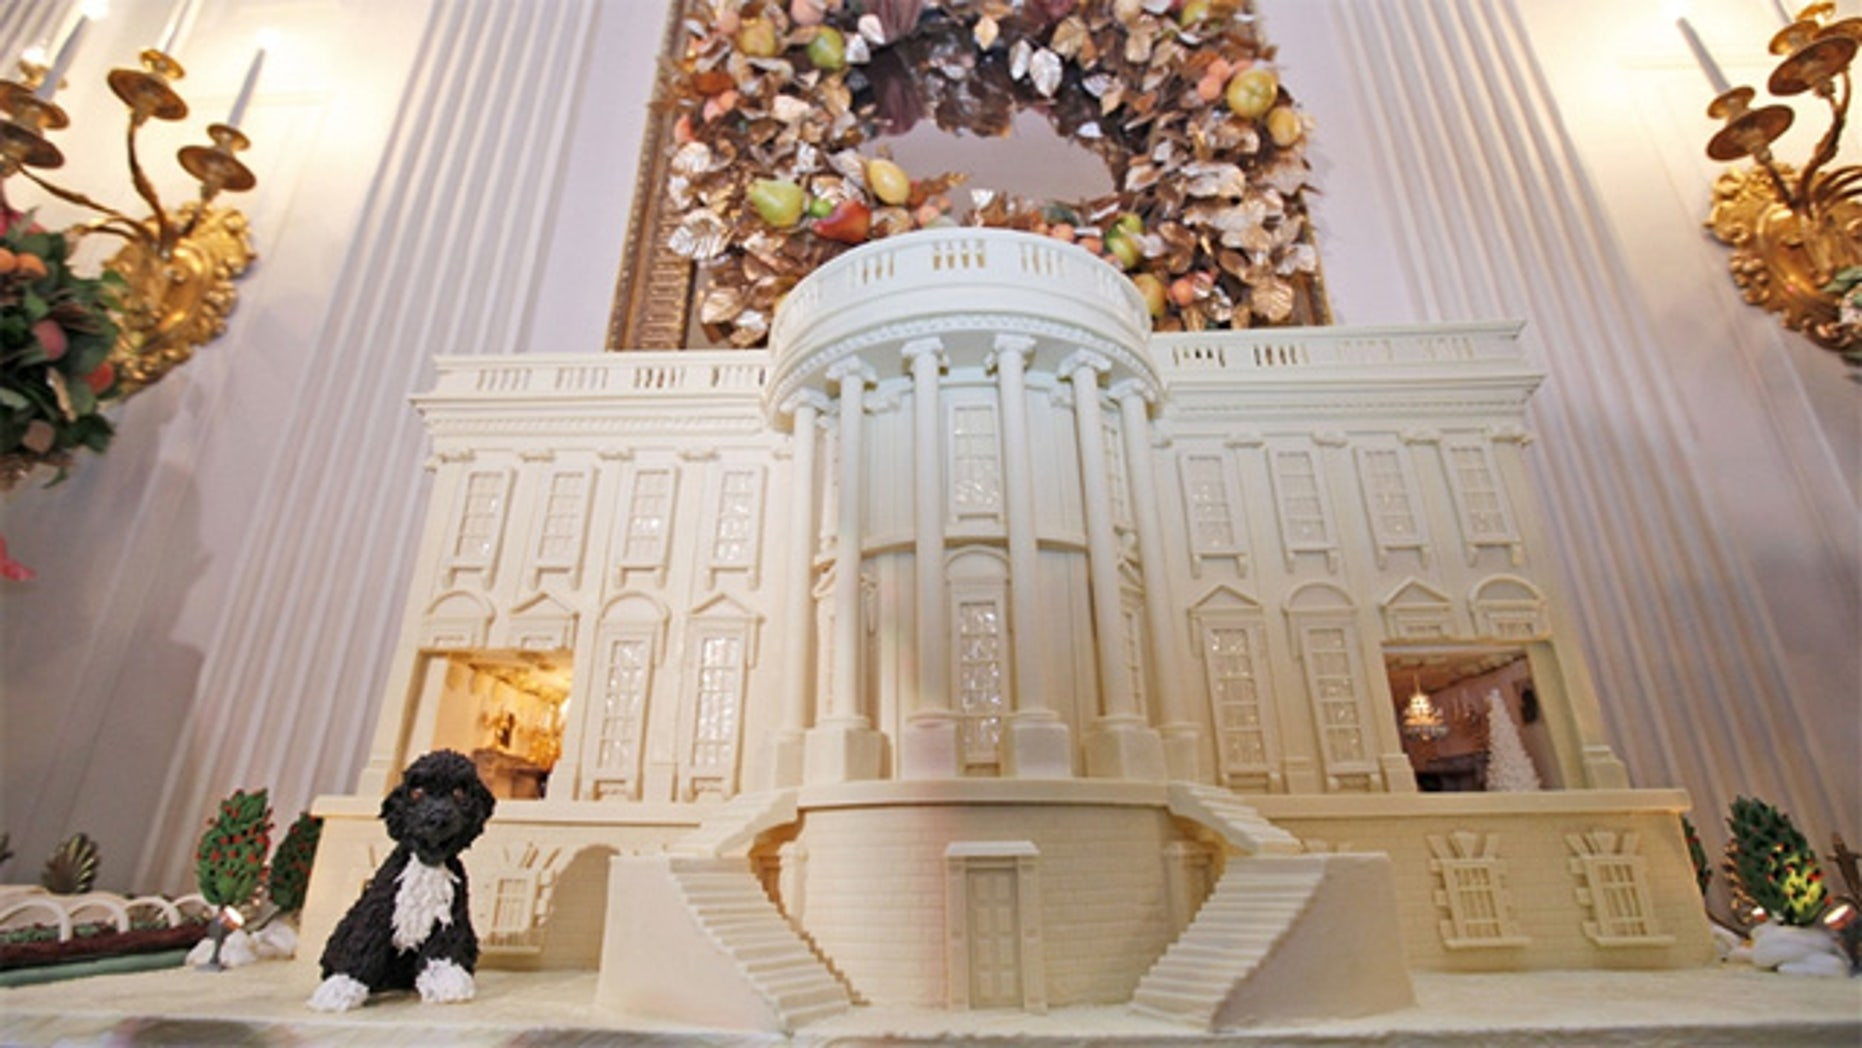 Dec. 1., 2011: A miniature of the Obama family's dog, Bo, sits on a 400-pound white chocolate-covered gingerbread replica of the White House in the State Dining Room of the White House in Washington, DC.